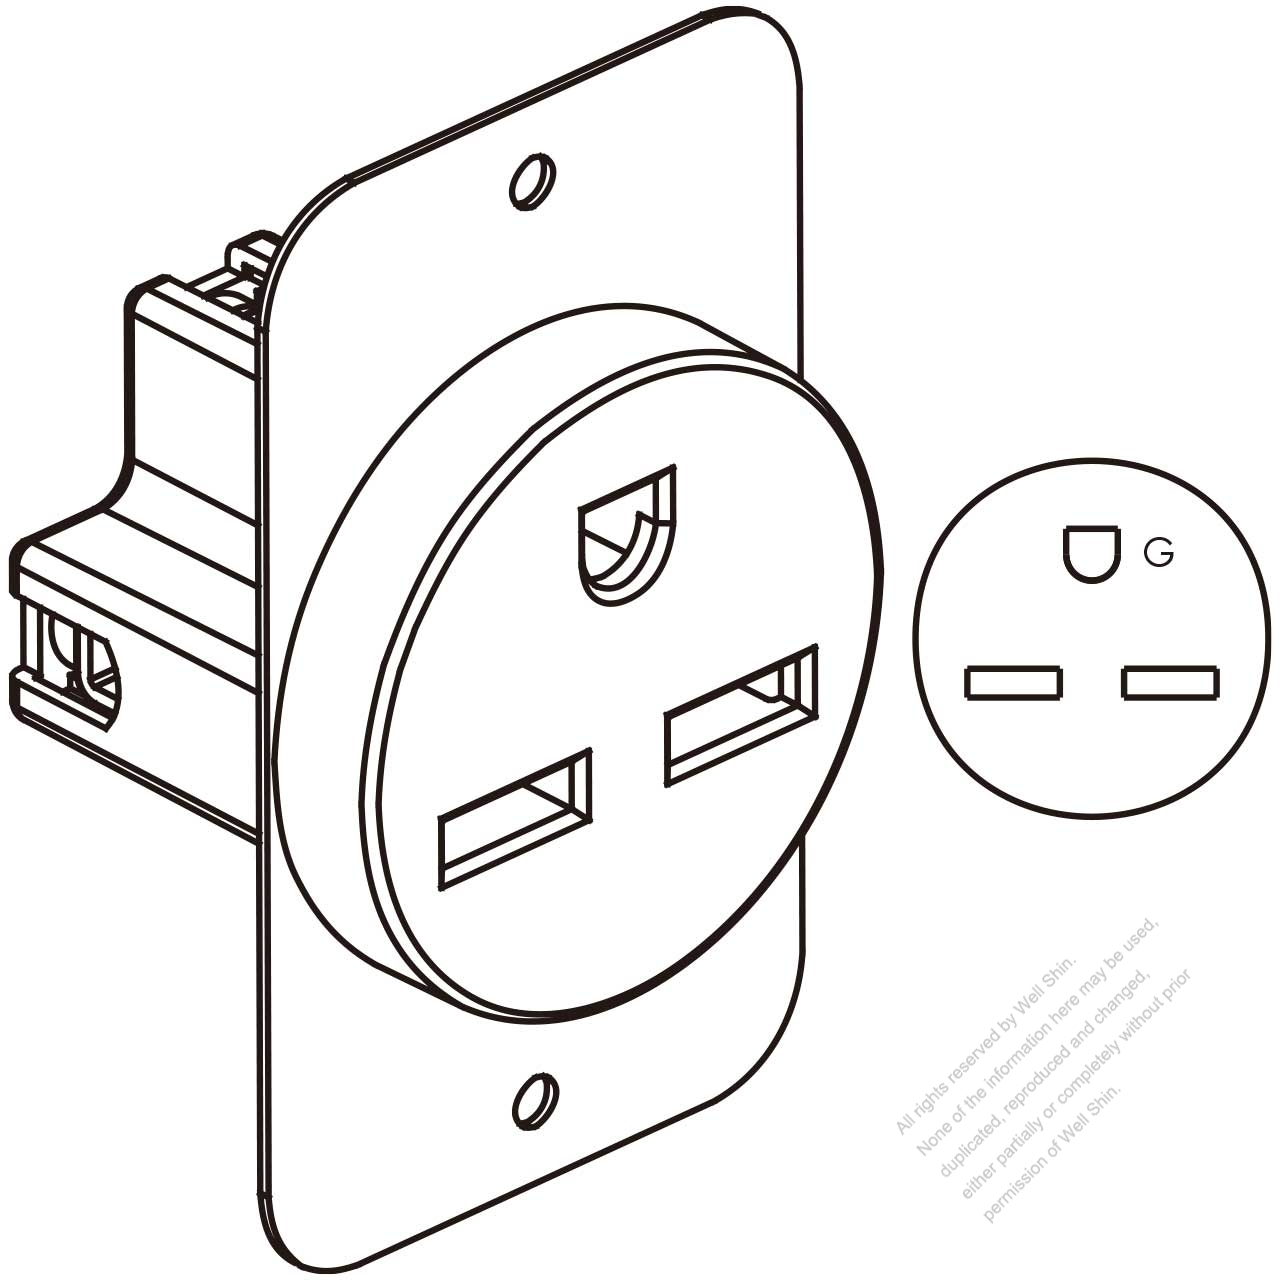 Usa Canada Flush Mount Receptacle Nema 6 30r 2 P 3 Wire